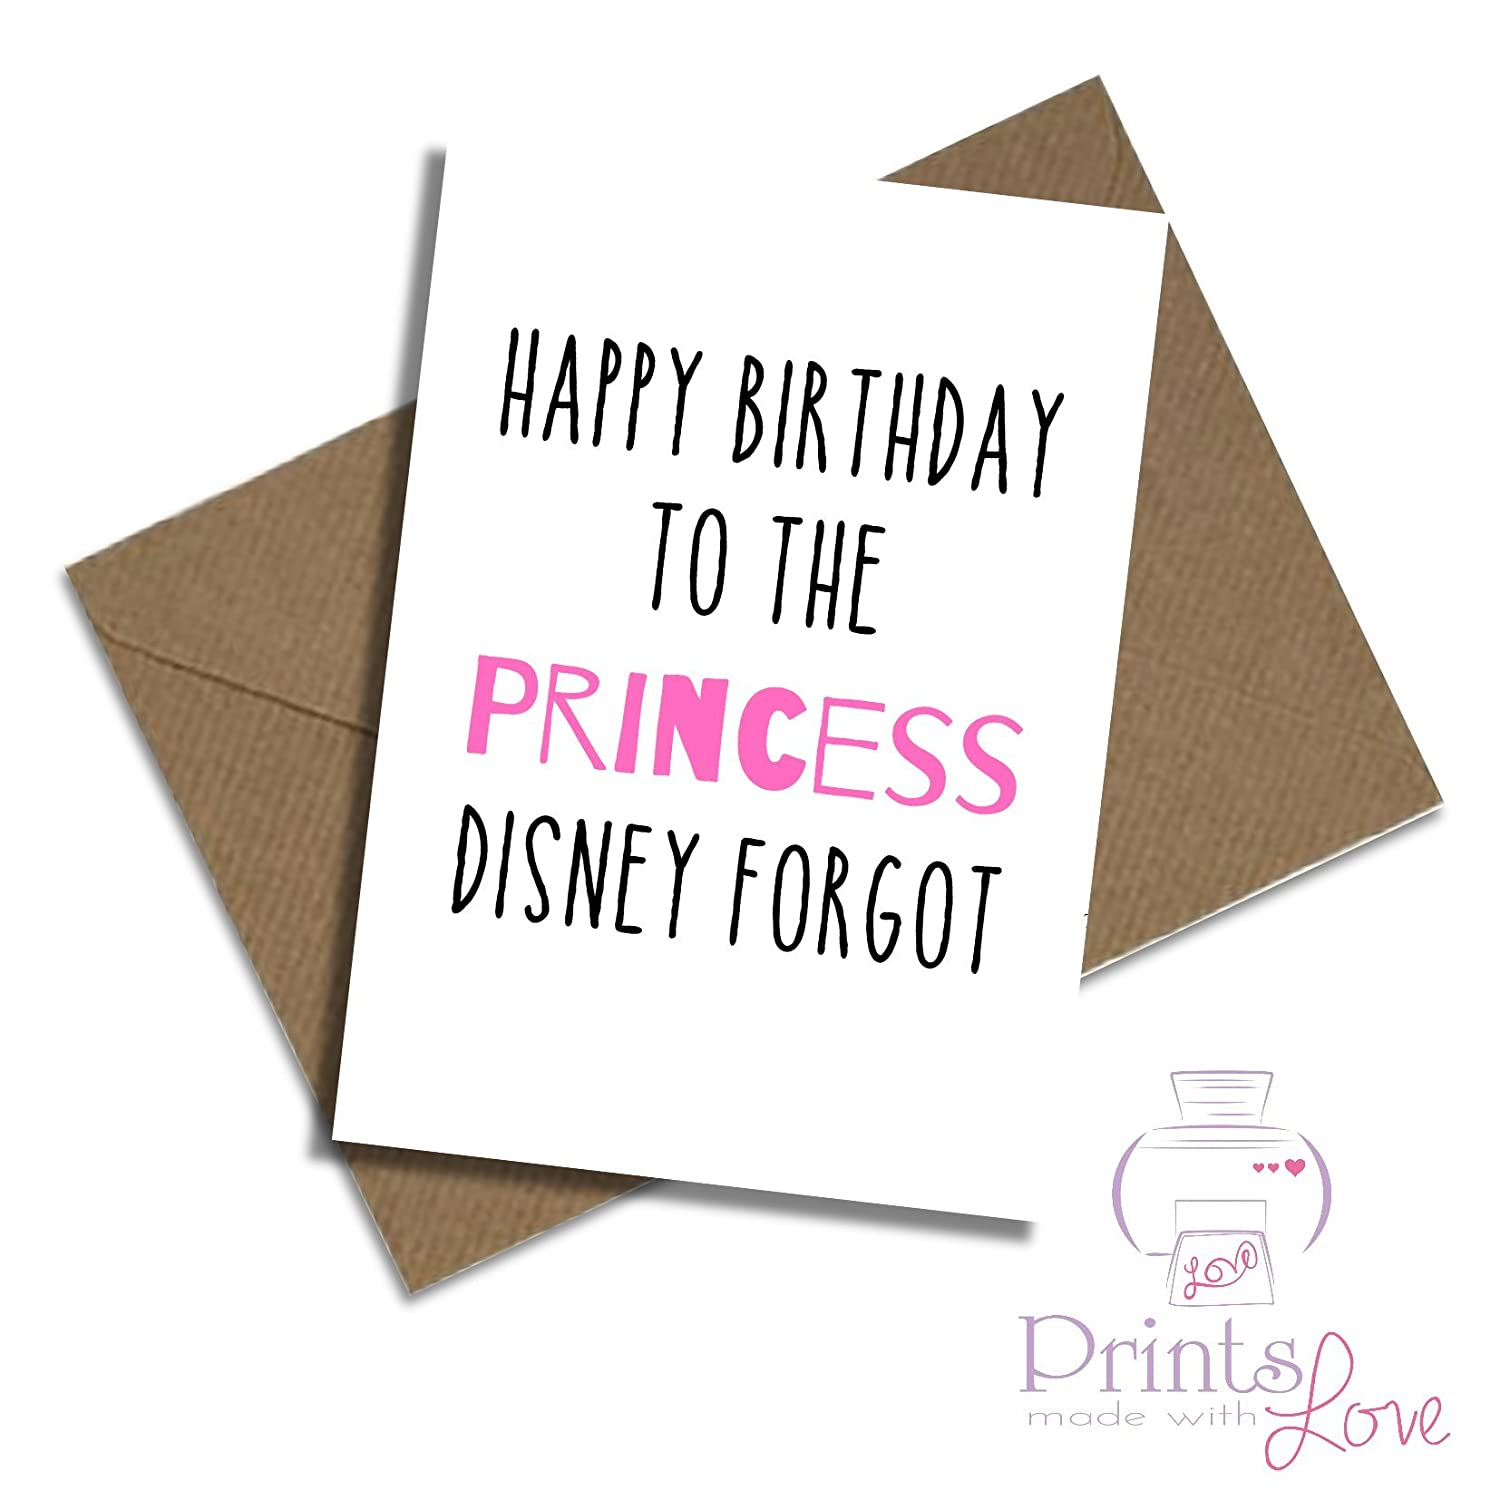 Happy birthday to the Princess Disney forgot A5 card Amazon